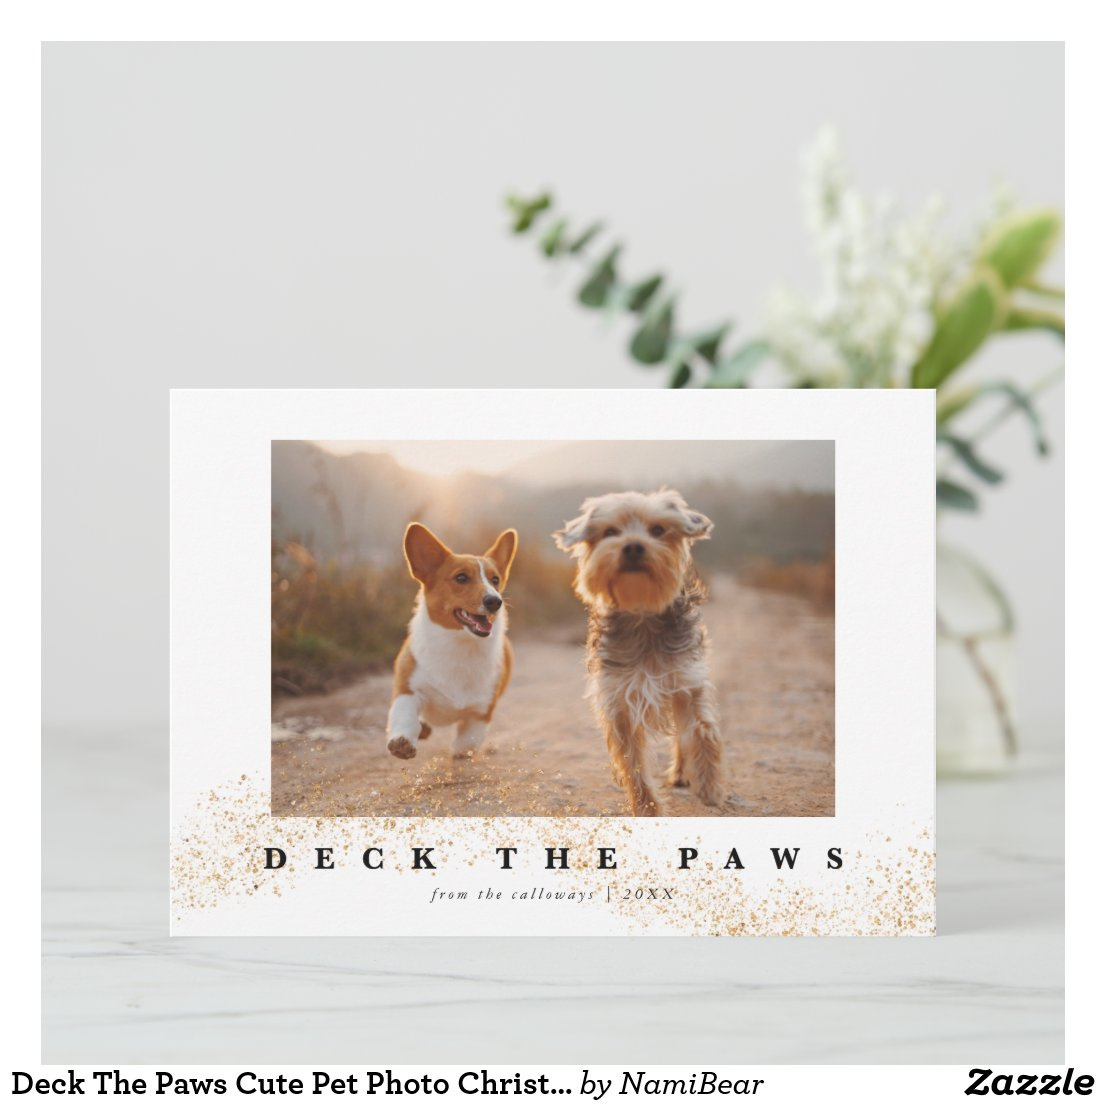 Deck The Paws Cute Pet Photo Christmas Holiday Card